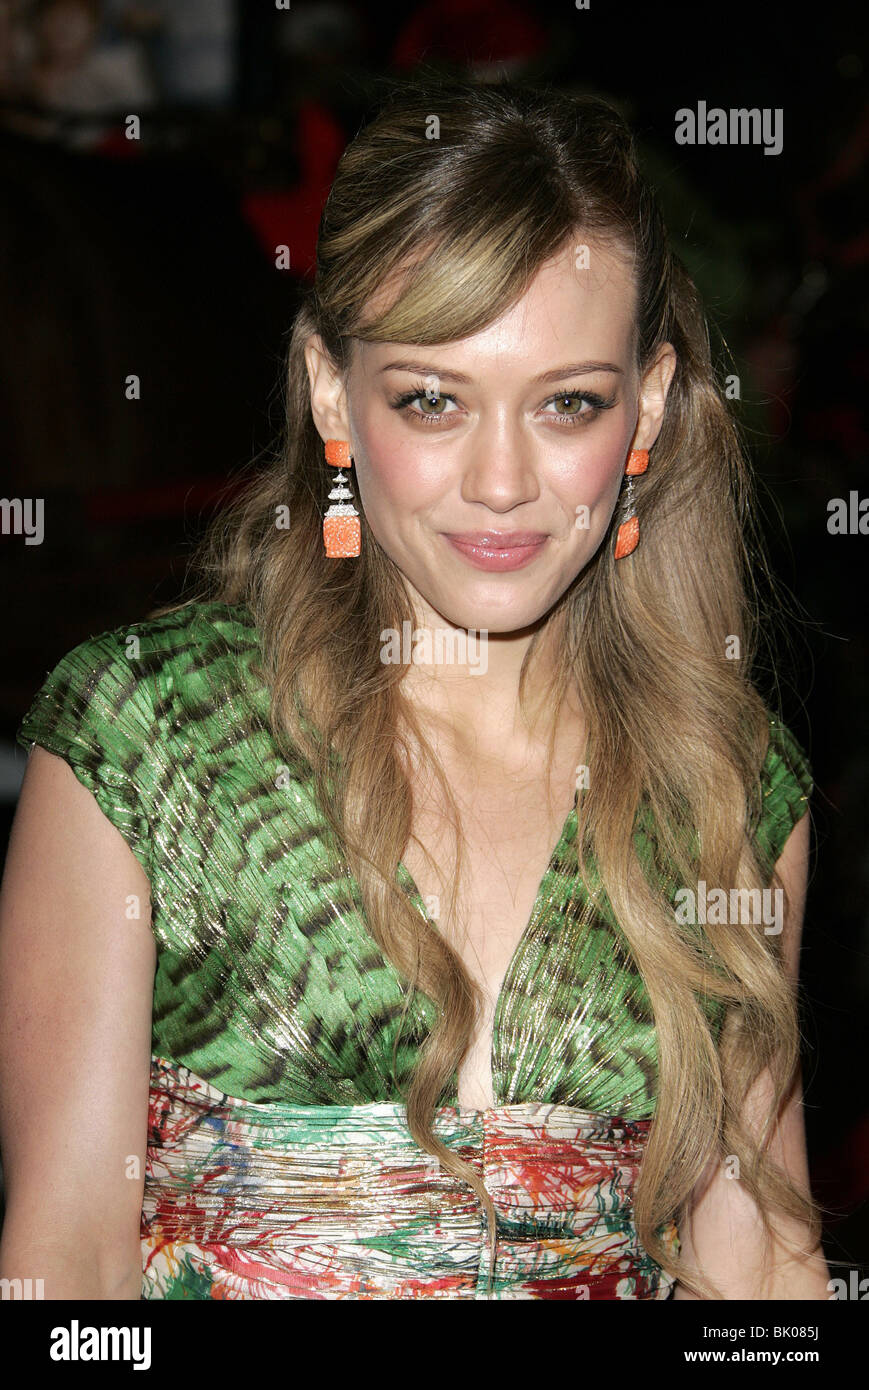 HILARY DUFF CHEAPER BY THE DOZEN 2 PREMIERE WESTWOOD LOS ...